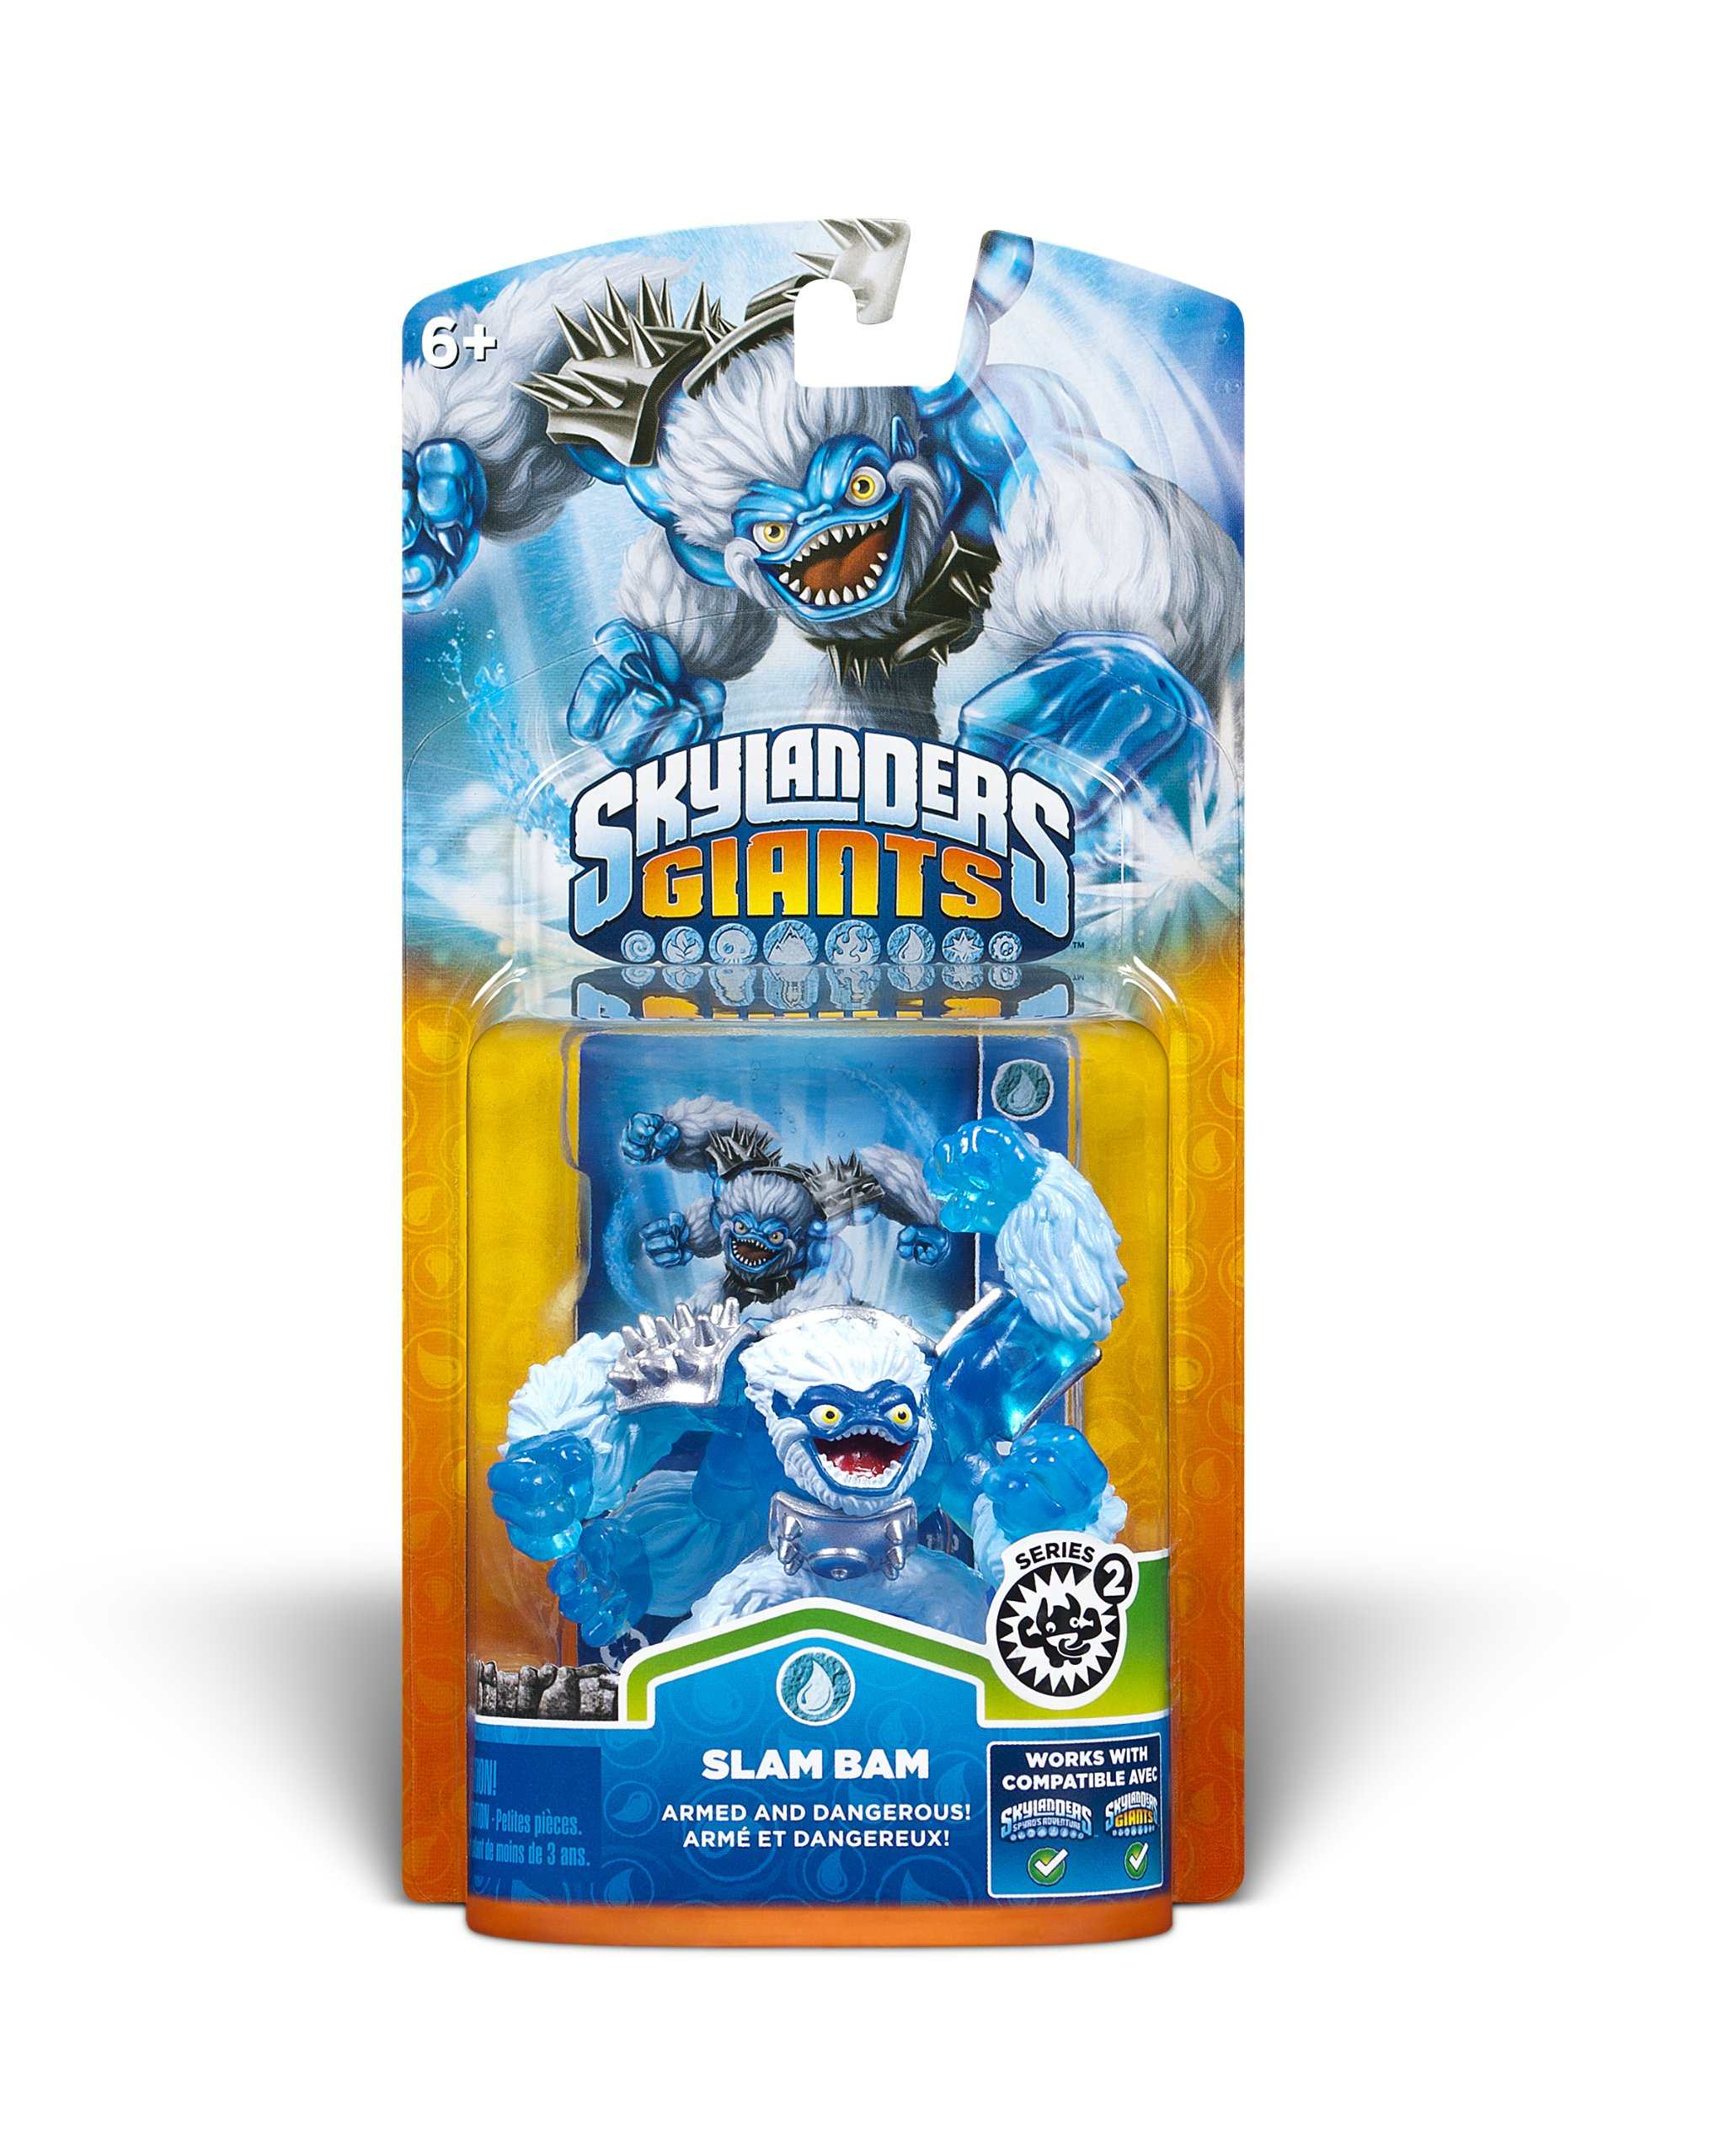 Skylanders Giants: Single Character Pack Core Series 2 Slam Bam